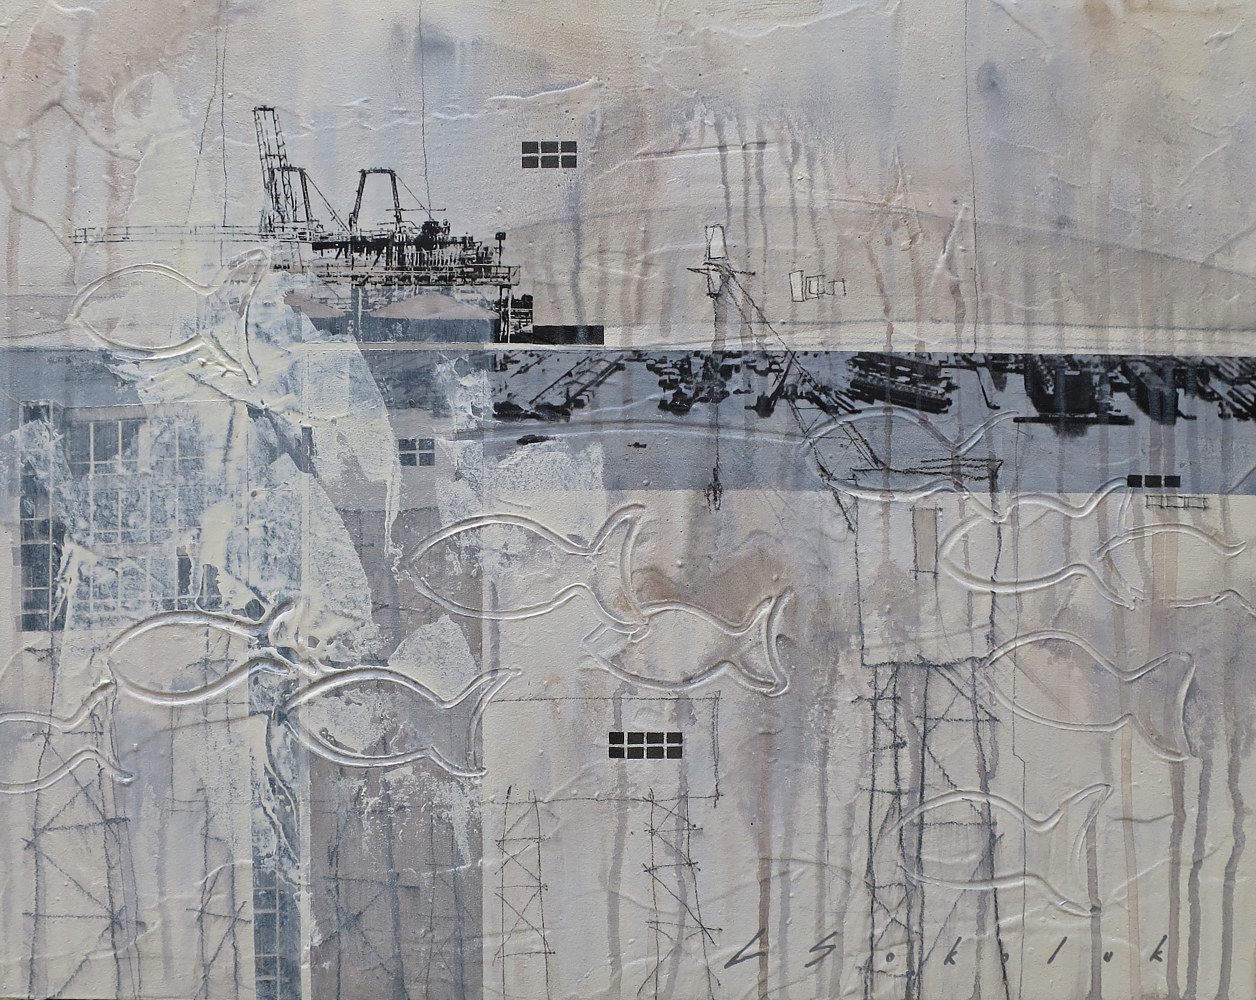 Mixed-media artwork Harbour Lines by Lori Sokoluk